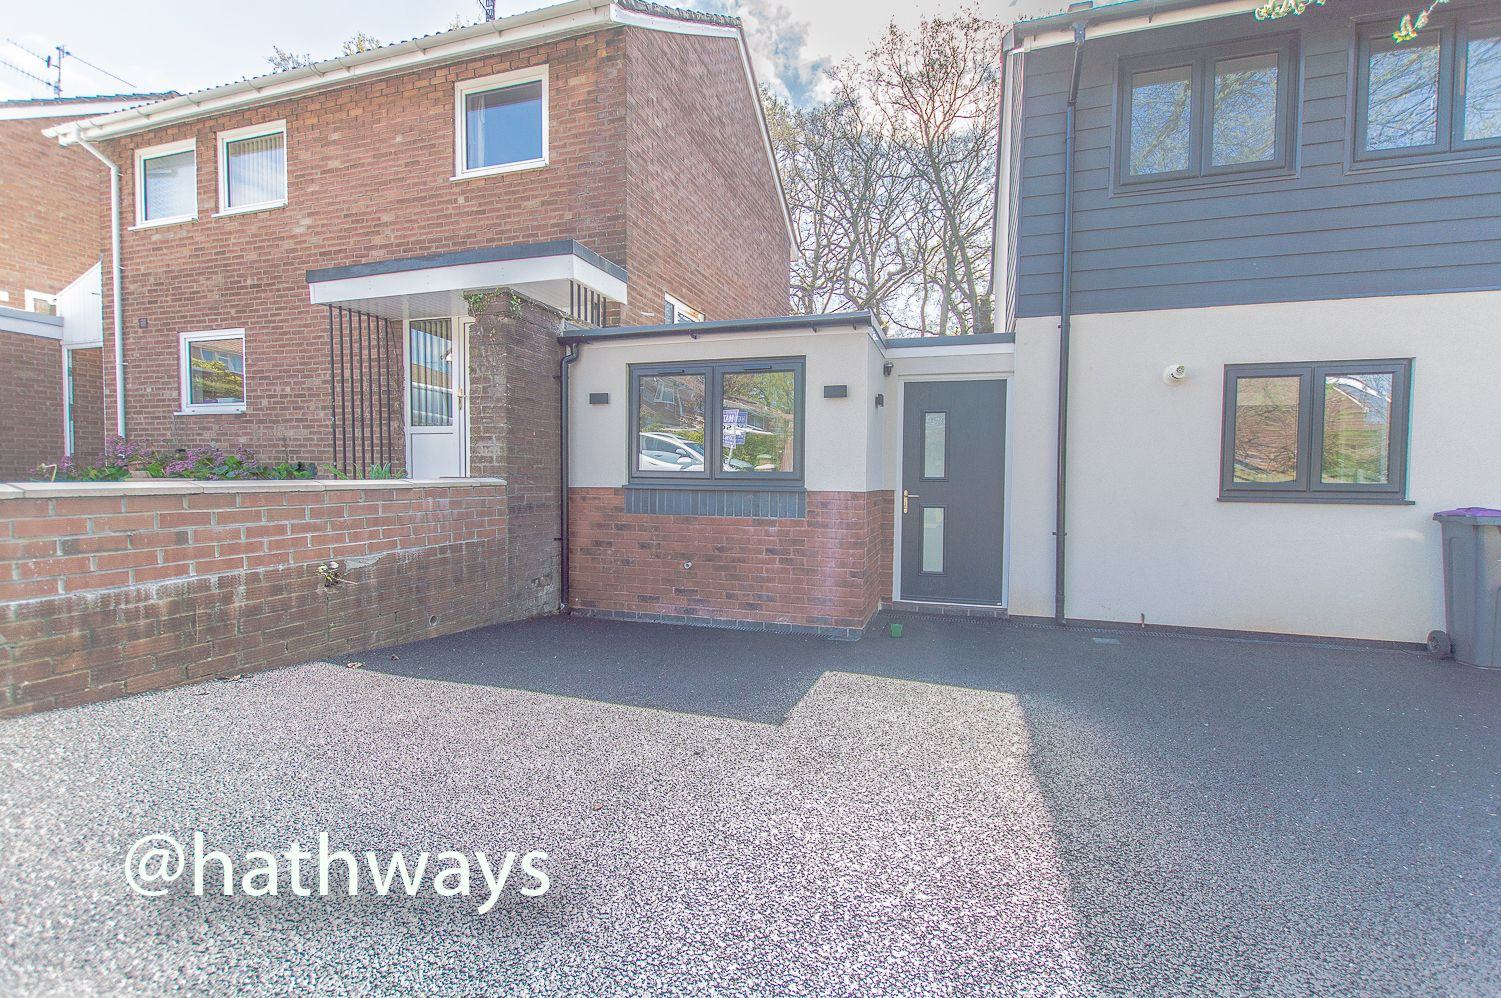 3 bed house for sale in Garw Wood Drive  - Property Image 57